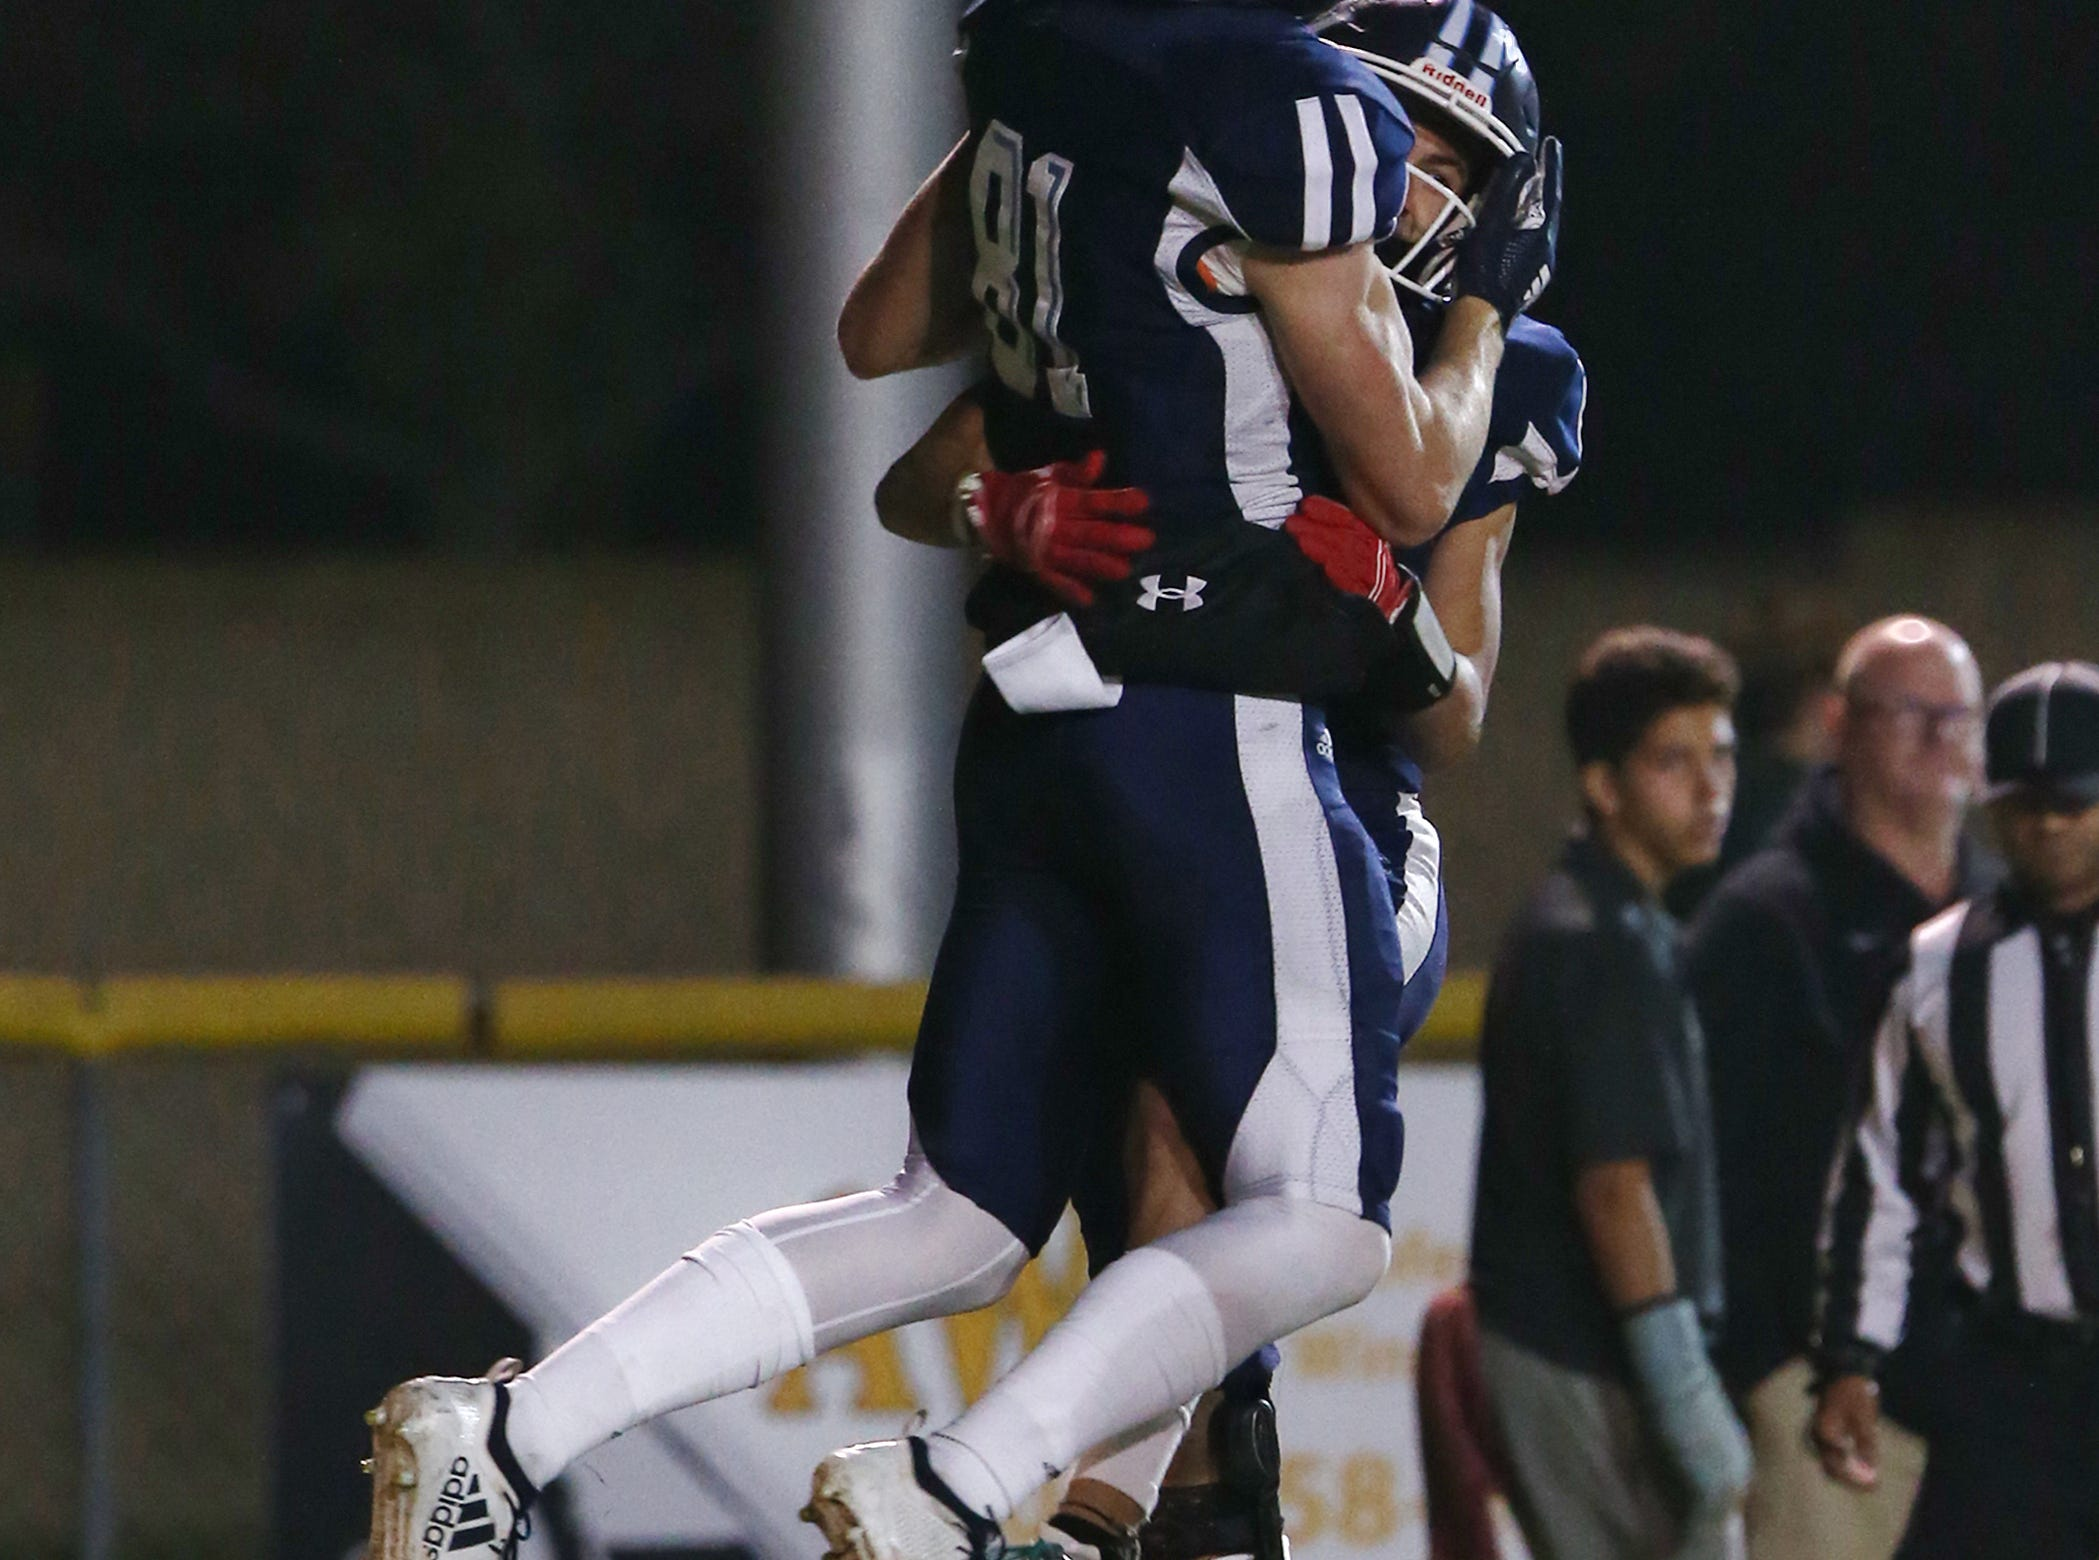 Camarillo High's Peter Dufau and Matthew Miller celebrate after Dufau scored a touchdown during the Scorpions' loss to Corona del Mar in a Division 4 semifinal game Friday night.